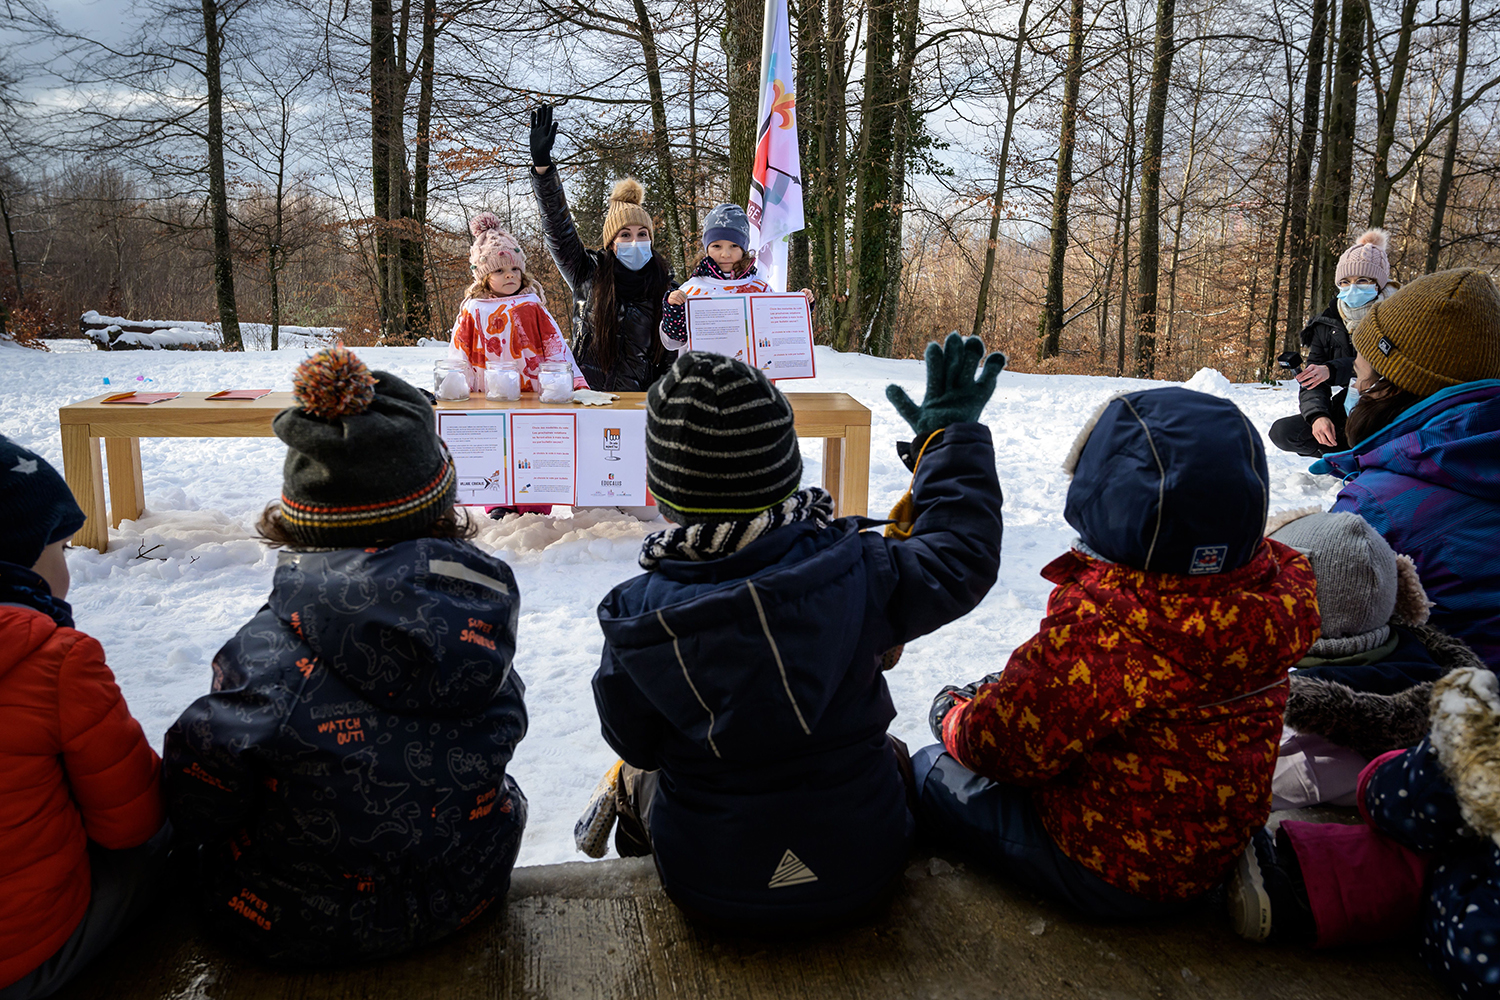 Swiss preschoolers participate in a simulated election in Lausanne on Jan. 18. The children were casting ballots in their pretend village—part of a growing push in Switzerland to prepare youths for taking part in the country's unique direct democratic system in which citizens are called to vote on a wide range of topics every few months. FABRICE COFFRINI/AFP via Getty Images